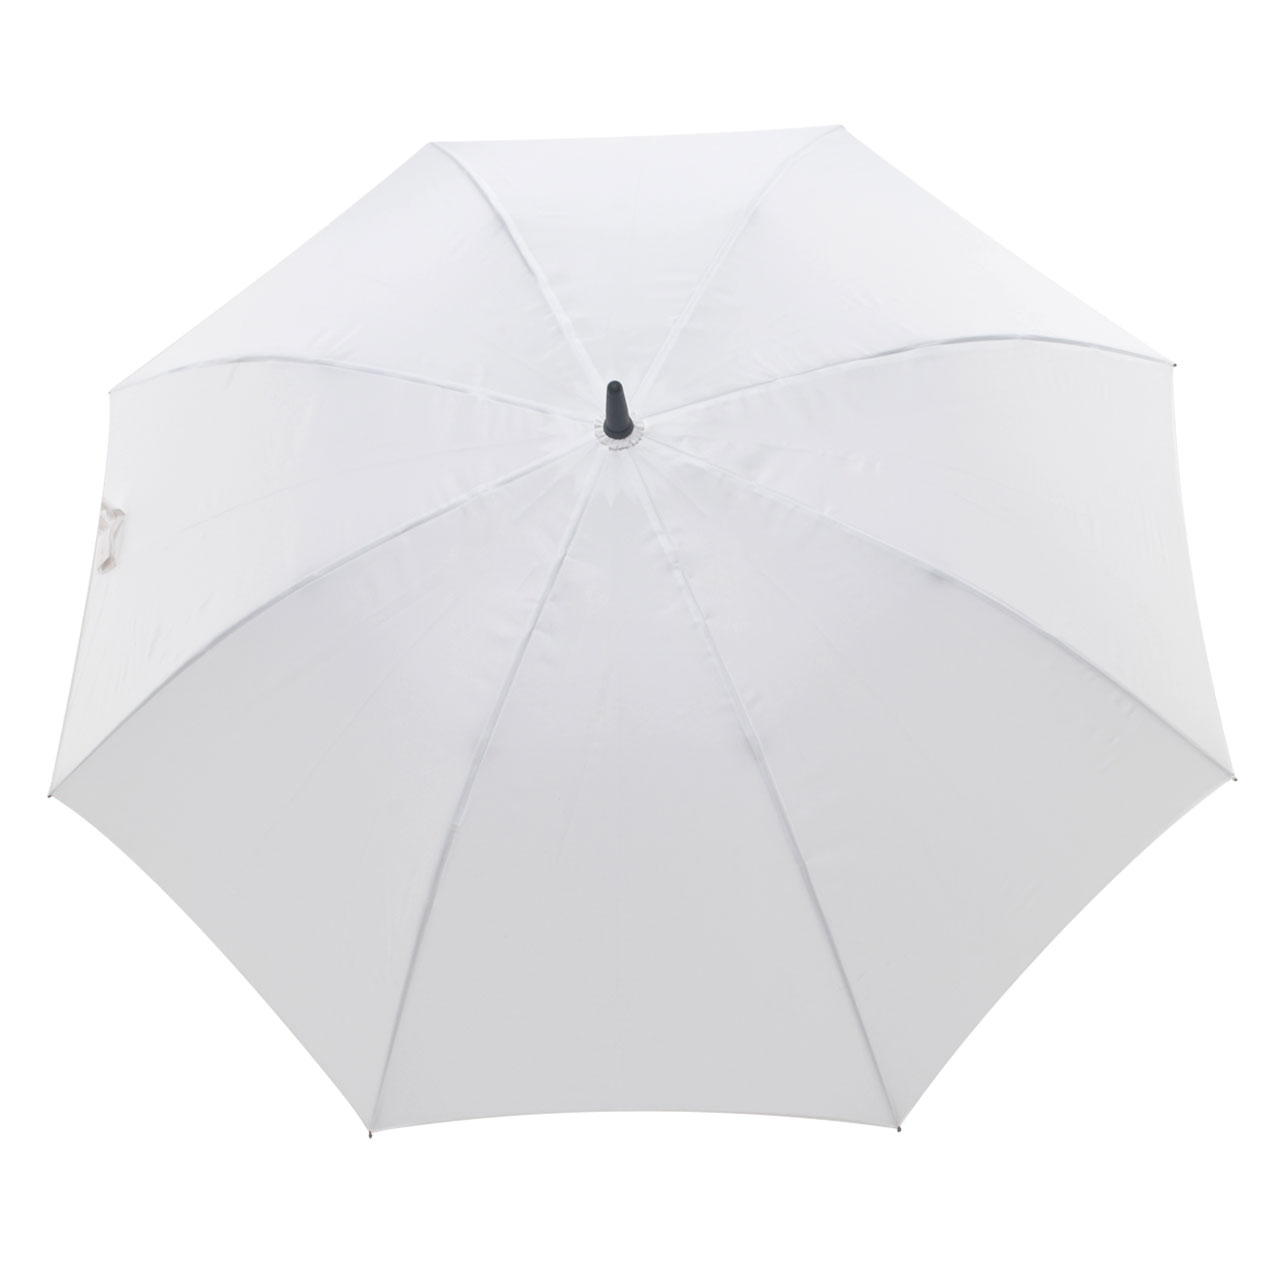 Print your own Umbrellas